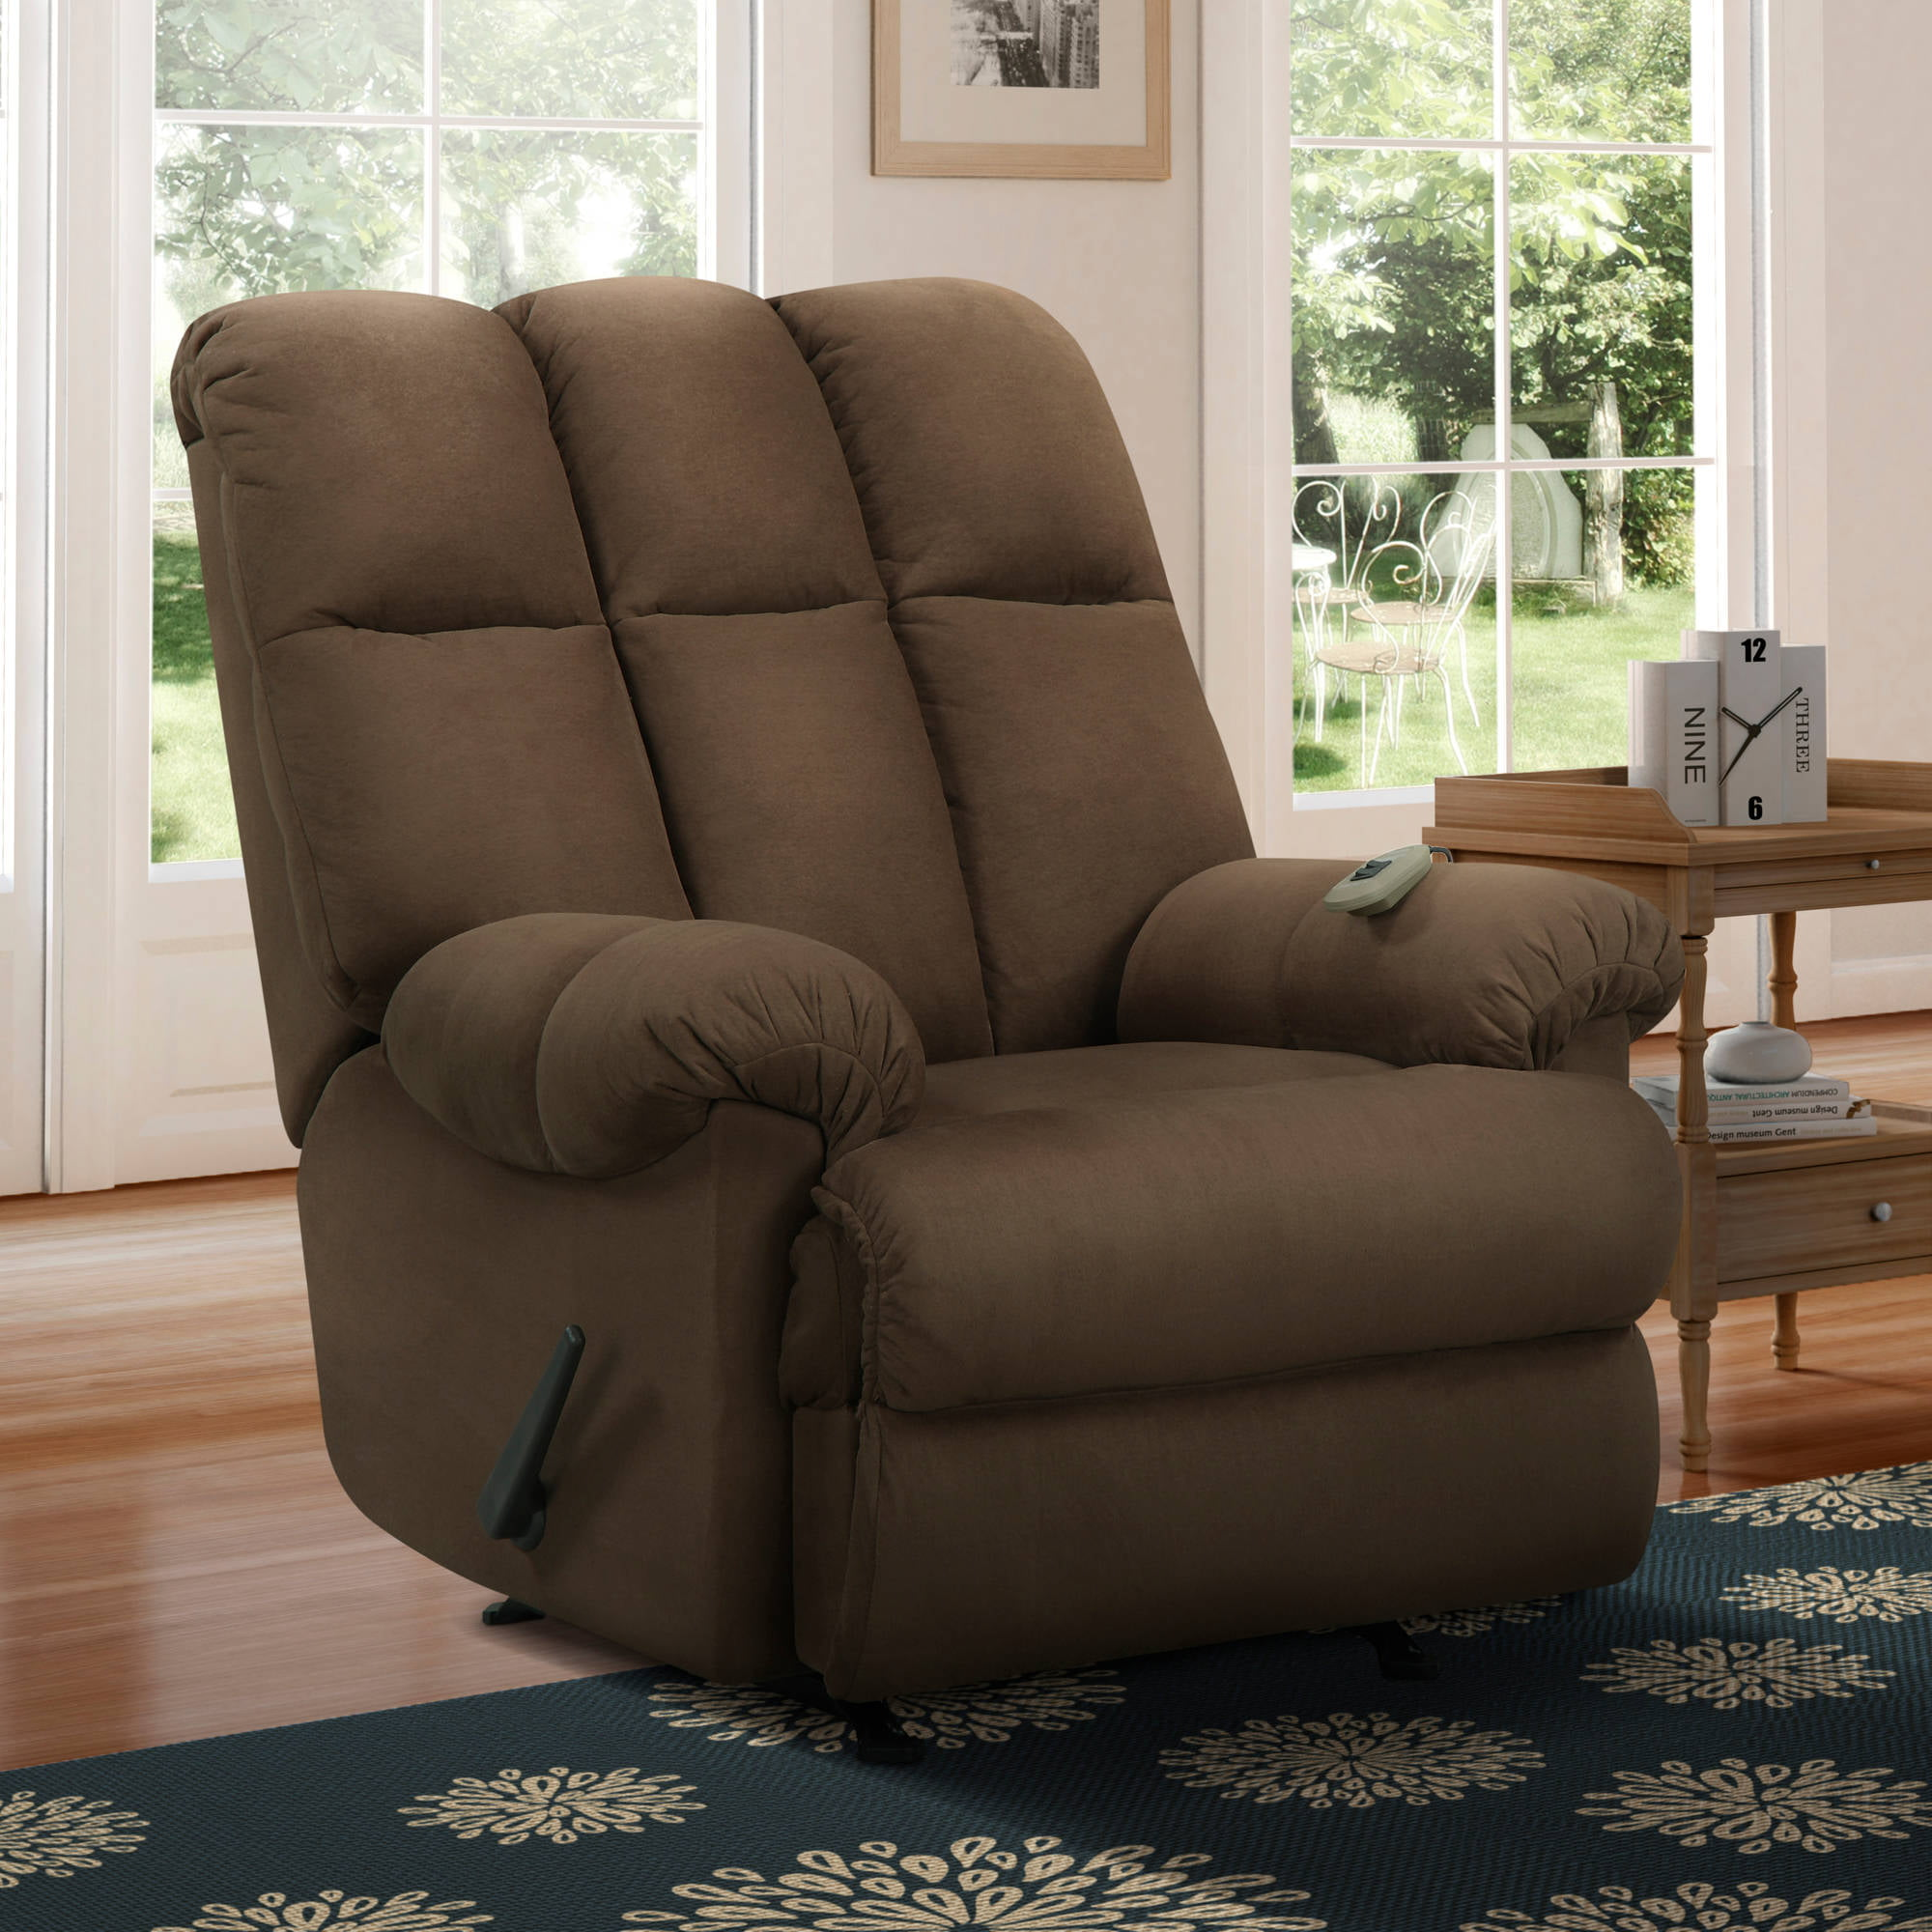 comfortable chair better ideas chairs velvet spaces ave comforter furniture living olive decorating homes neutral rooms vintage tufted for arrangement six button small room strategies